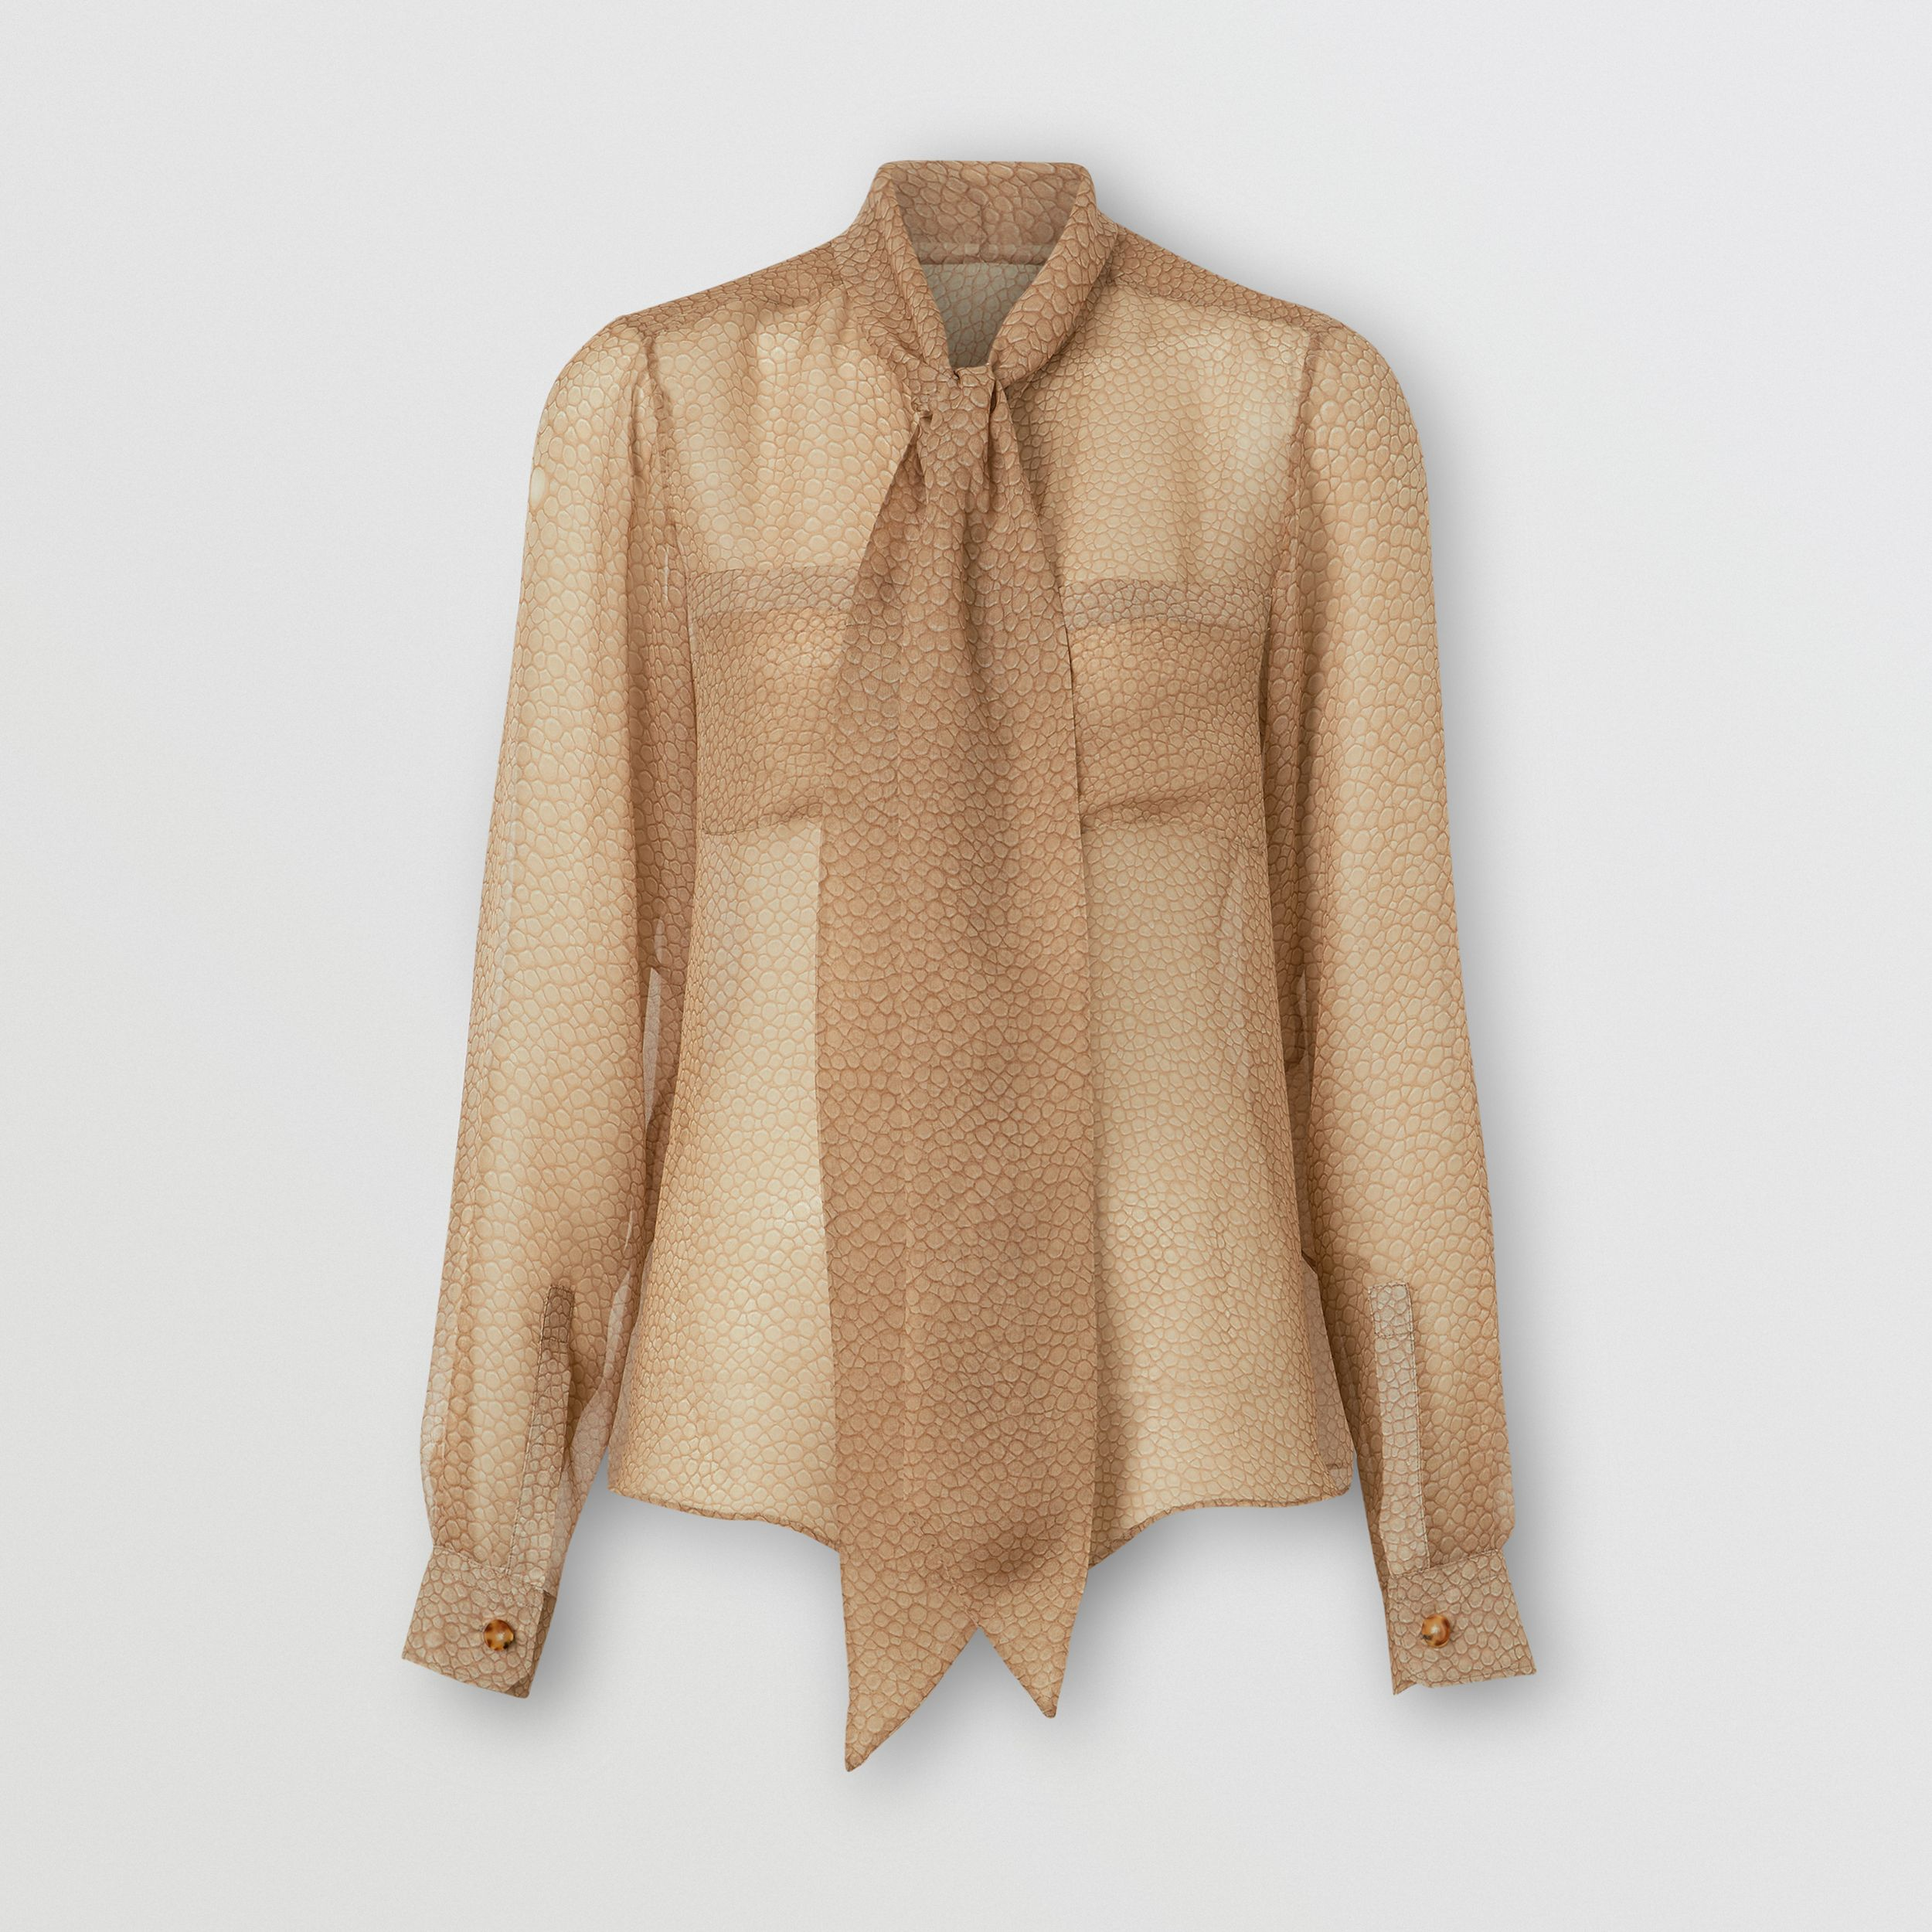 Fish-scale Print Silk Oversized Pussy-bow Blouse in Light Sand - Women | Burberry - 4